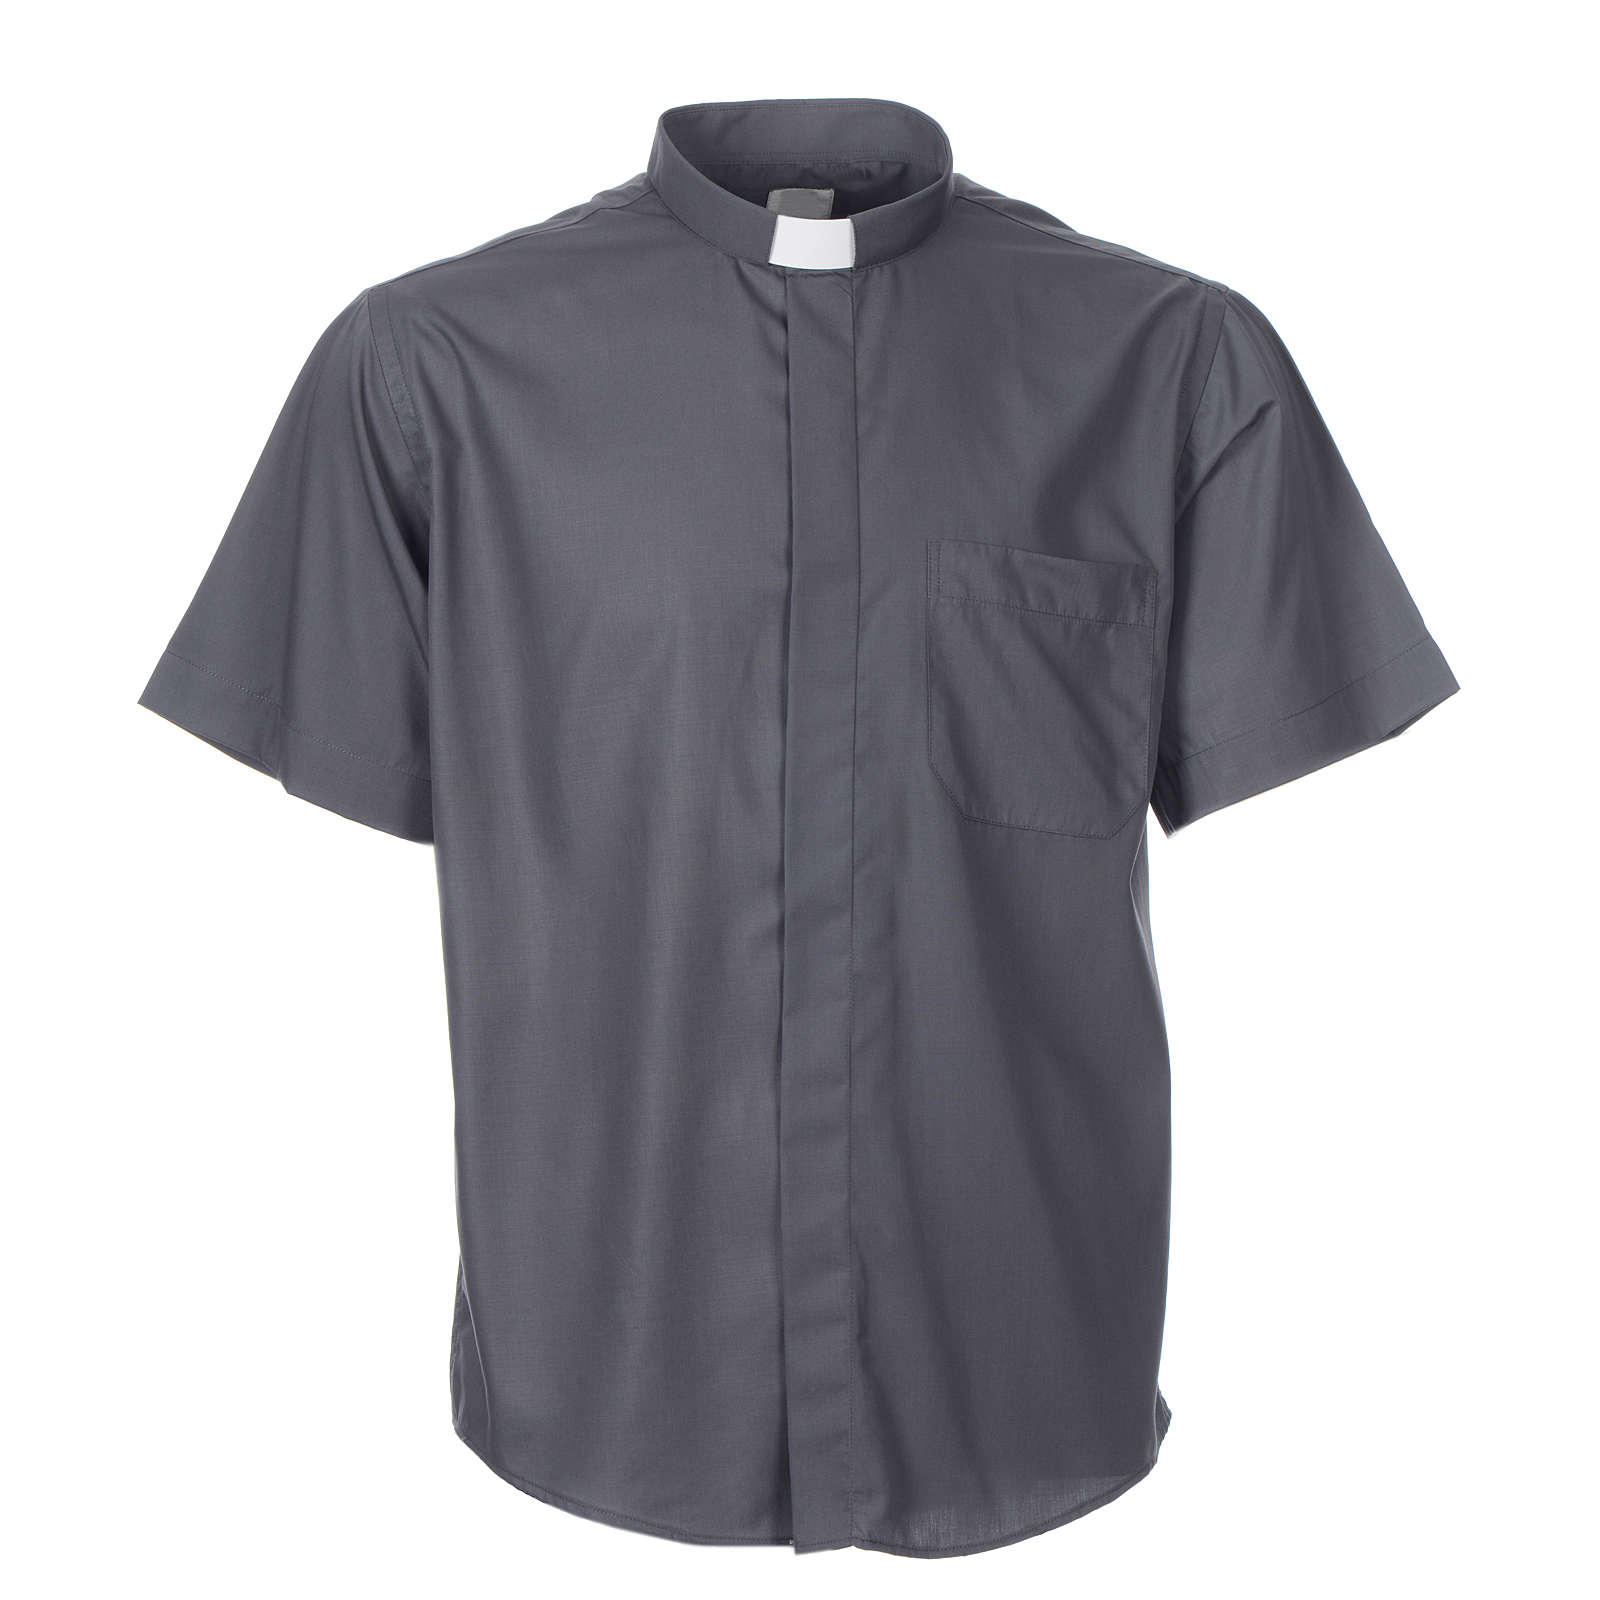 STOCK Clergy shirt, short sleeves in dark grey mixed cotton 4